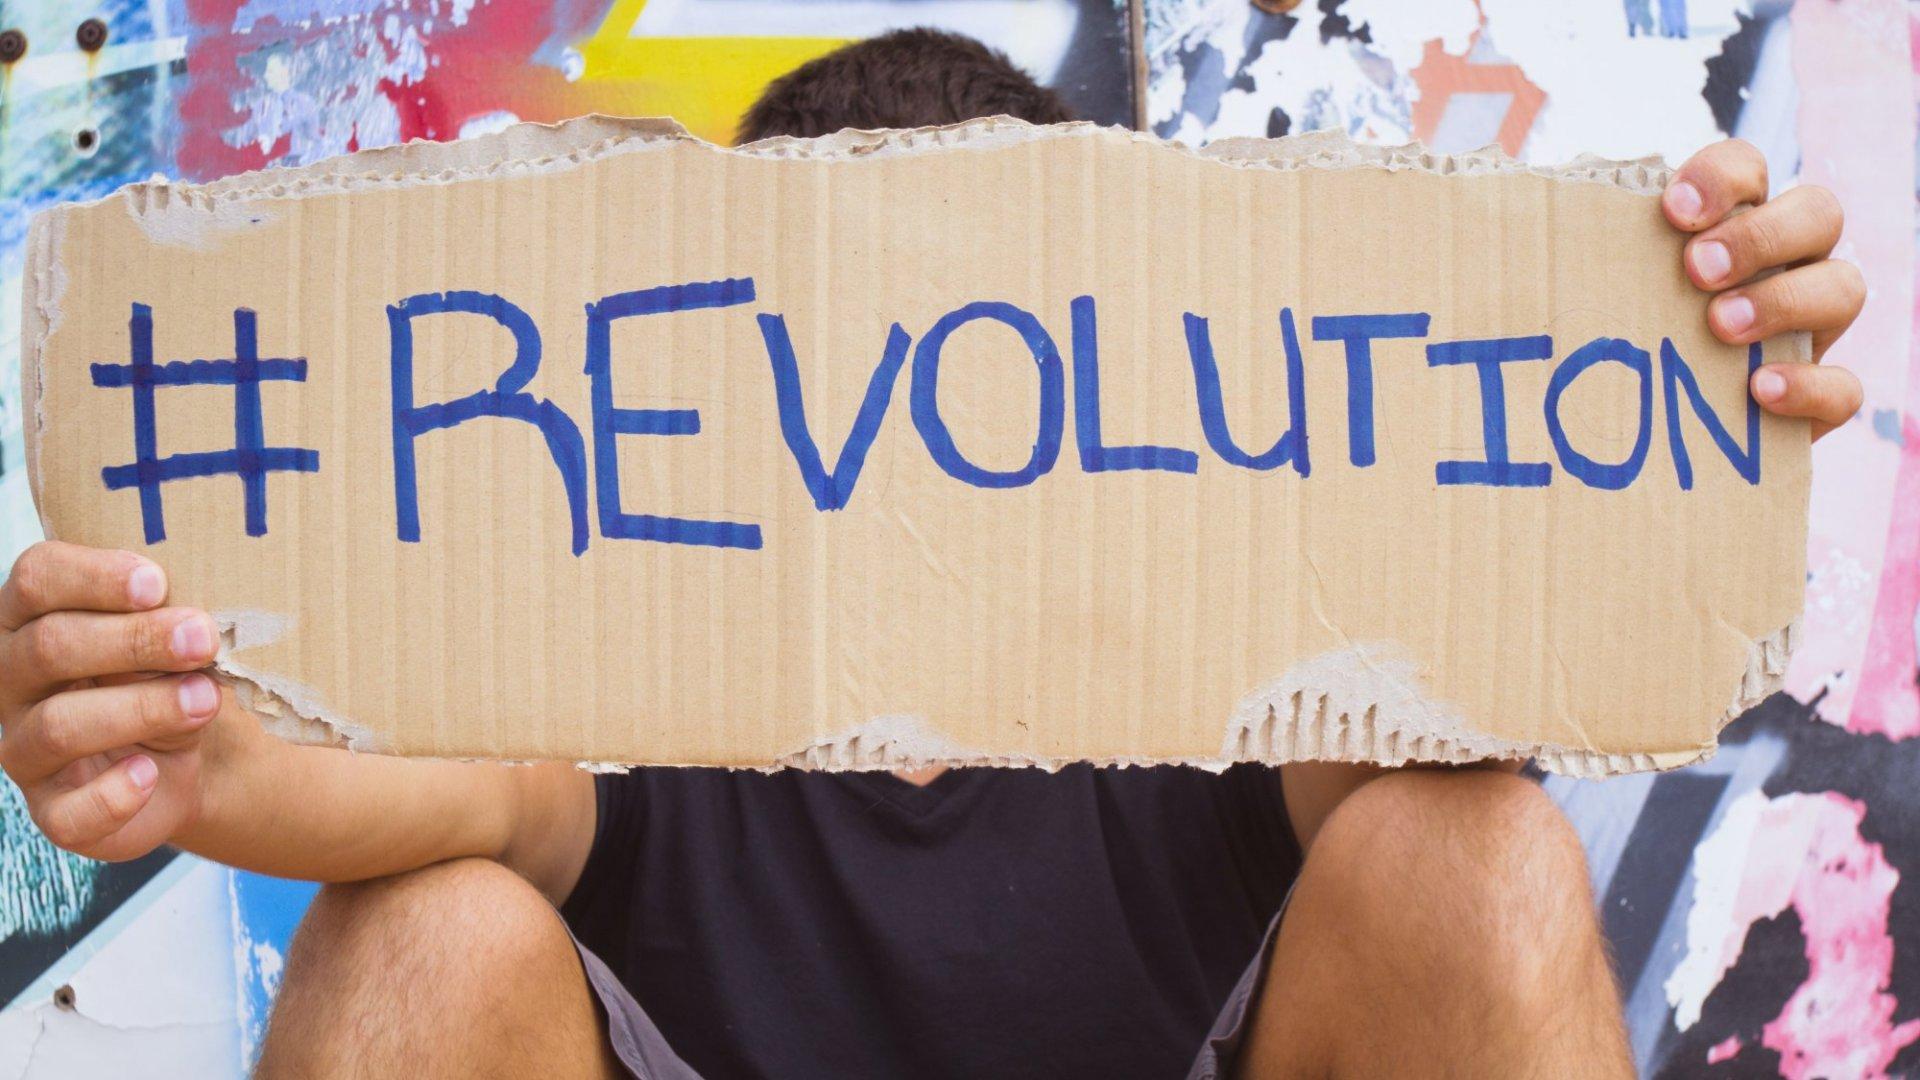 Silicon Valley, Brainwashing, and the Upcoming Millennial Career Revolution